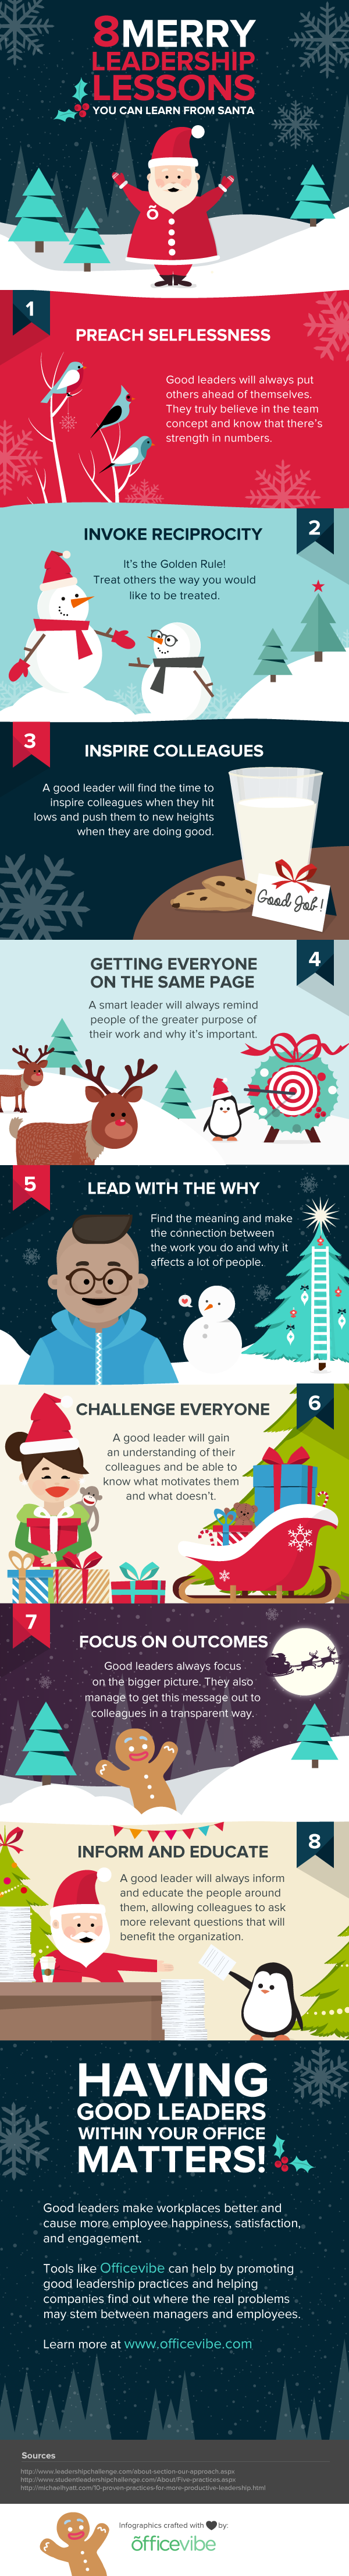 Infographic: 8 Merry Leadership Lessons You Can Learn From Santa